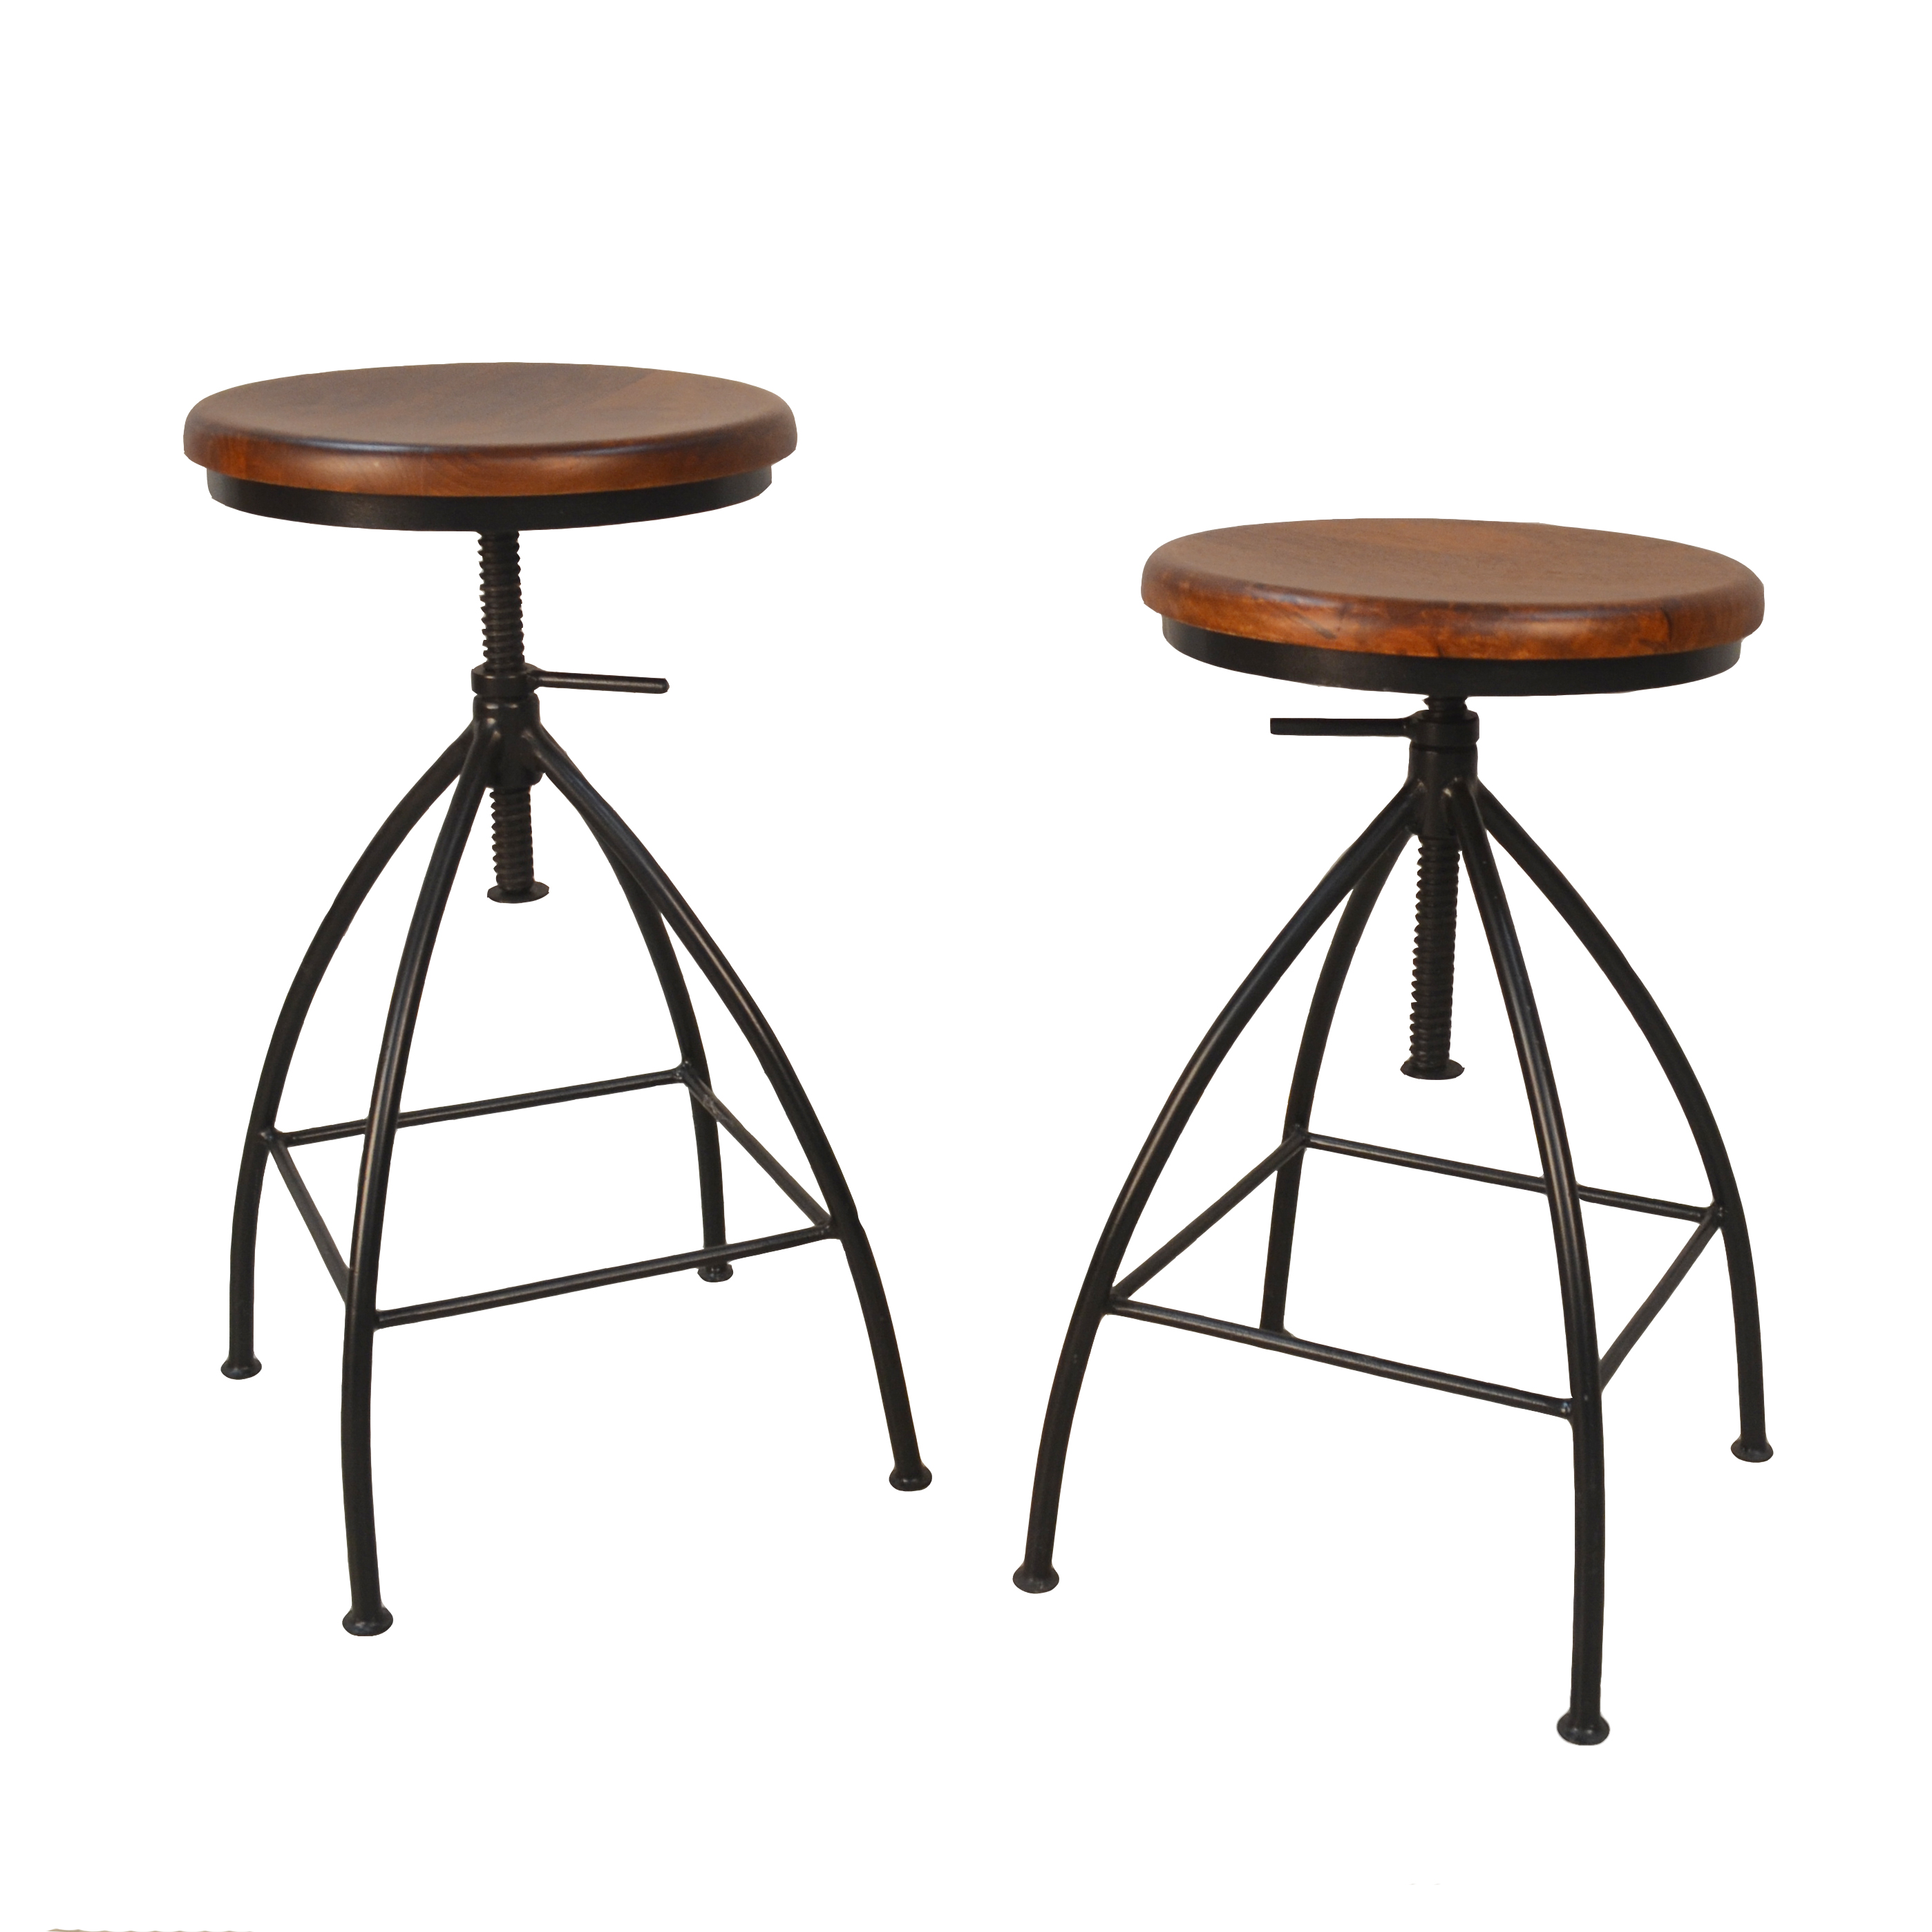 Advik Adjustable Stool Set of 2, Chestnut/Black